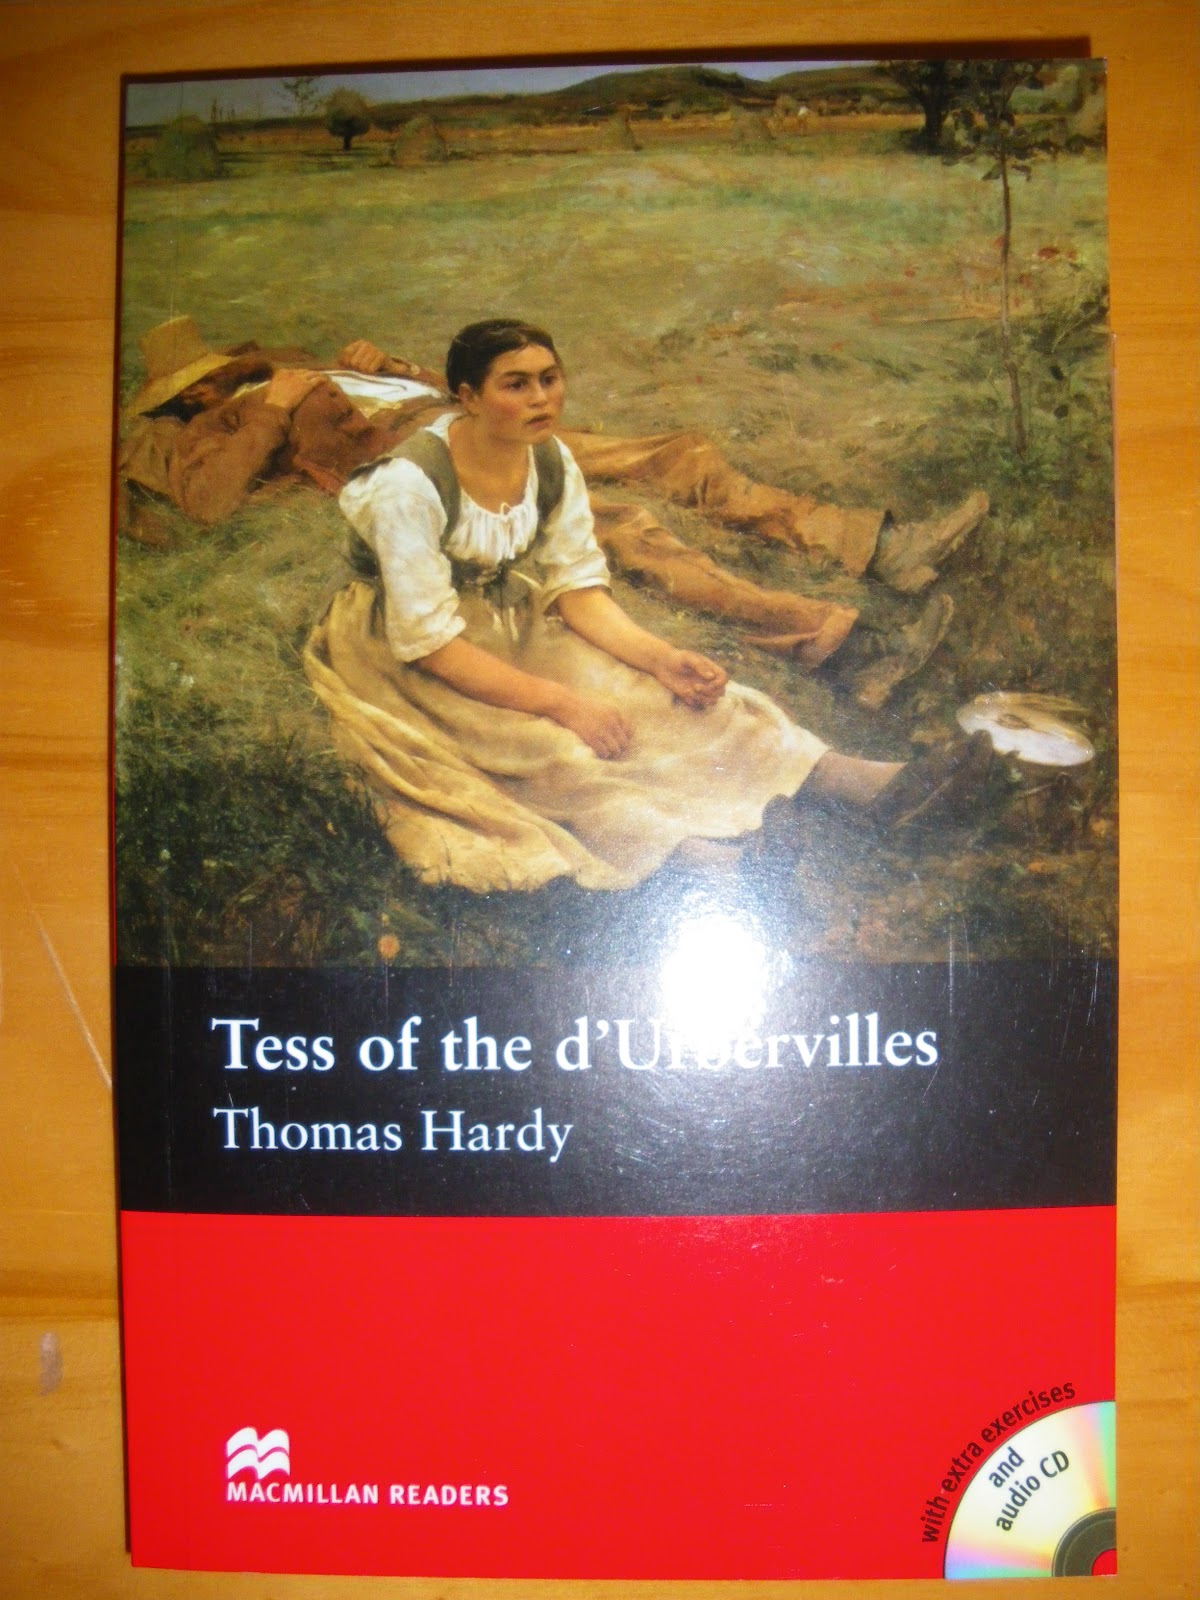 an analysis of narrative techniques in tess of the durbervilles by thomas hardy Chapter 35 phase the fifth: the woman pays chapter xxxv her narrative ended even its re-assertions and secondary explanations were done tess's voice throughout had hardly risen higher than its opening tone there had been no exculpatory phrase of any kind, and she had not wept.